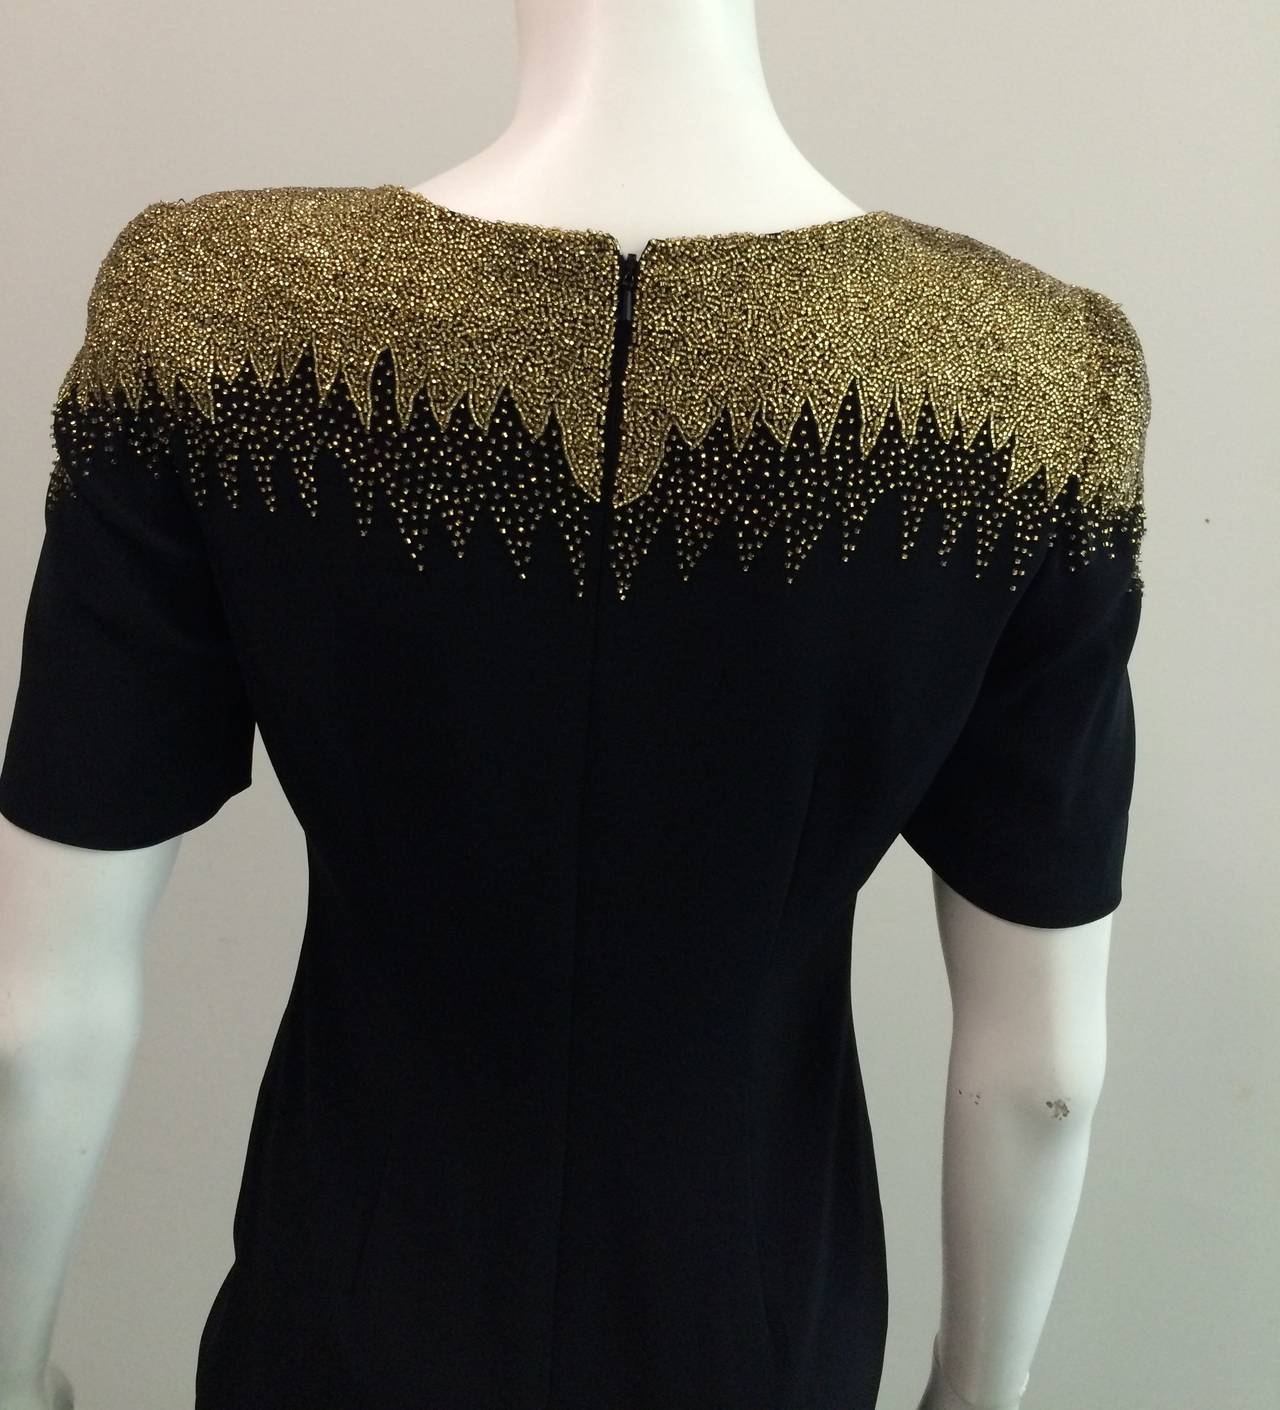 Oleg Cassini Black Tie for Bergdorf Goodman 80s beaded dress size 4. 7